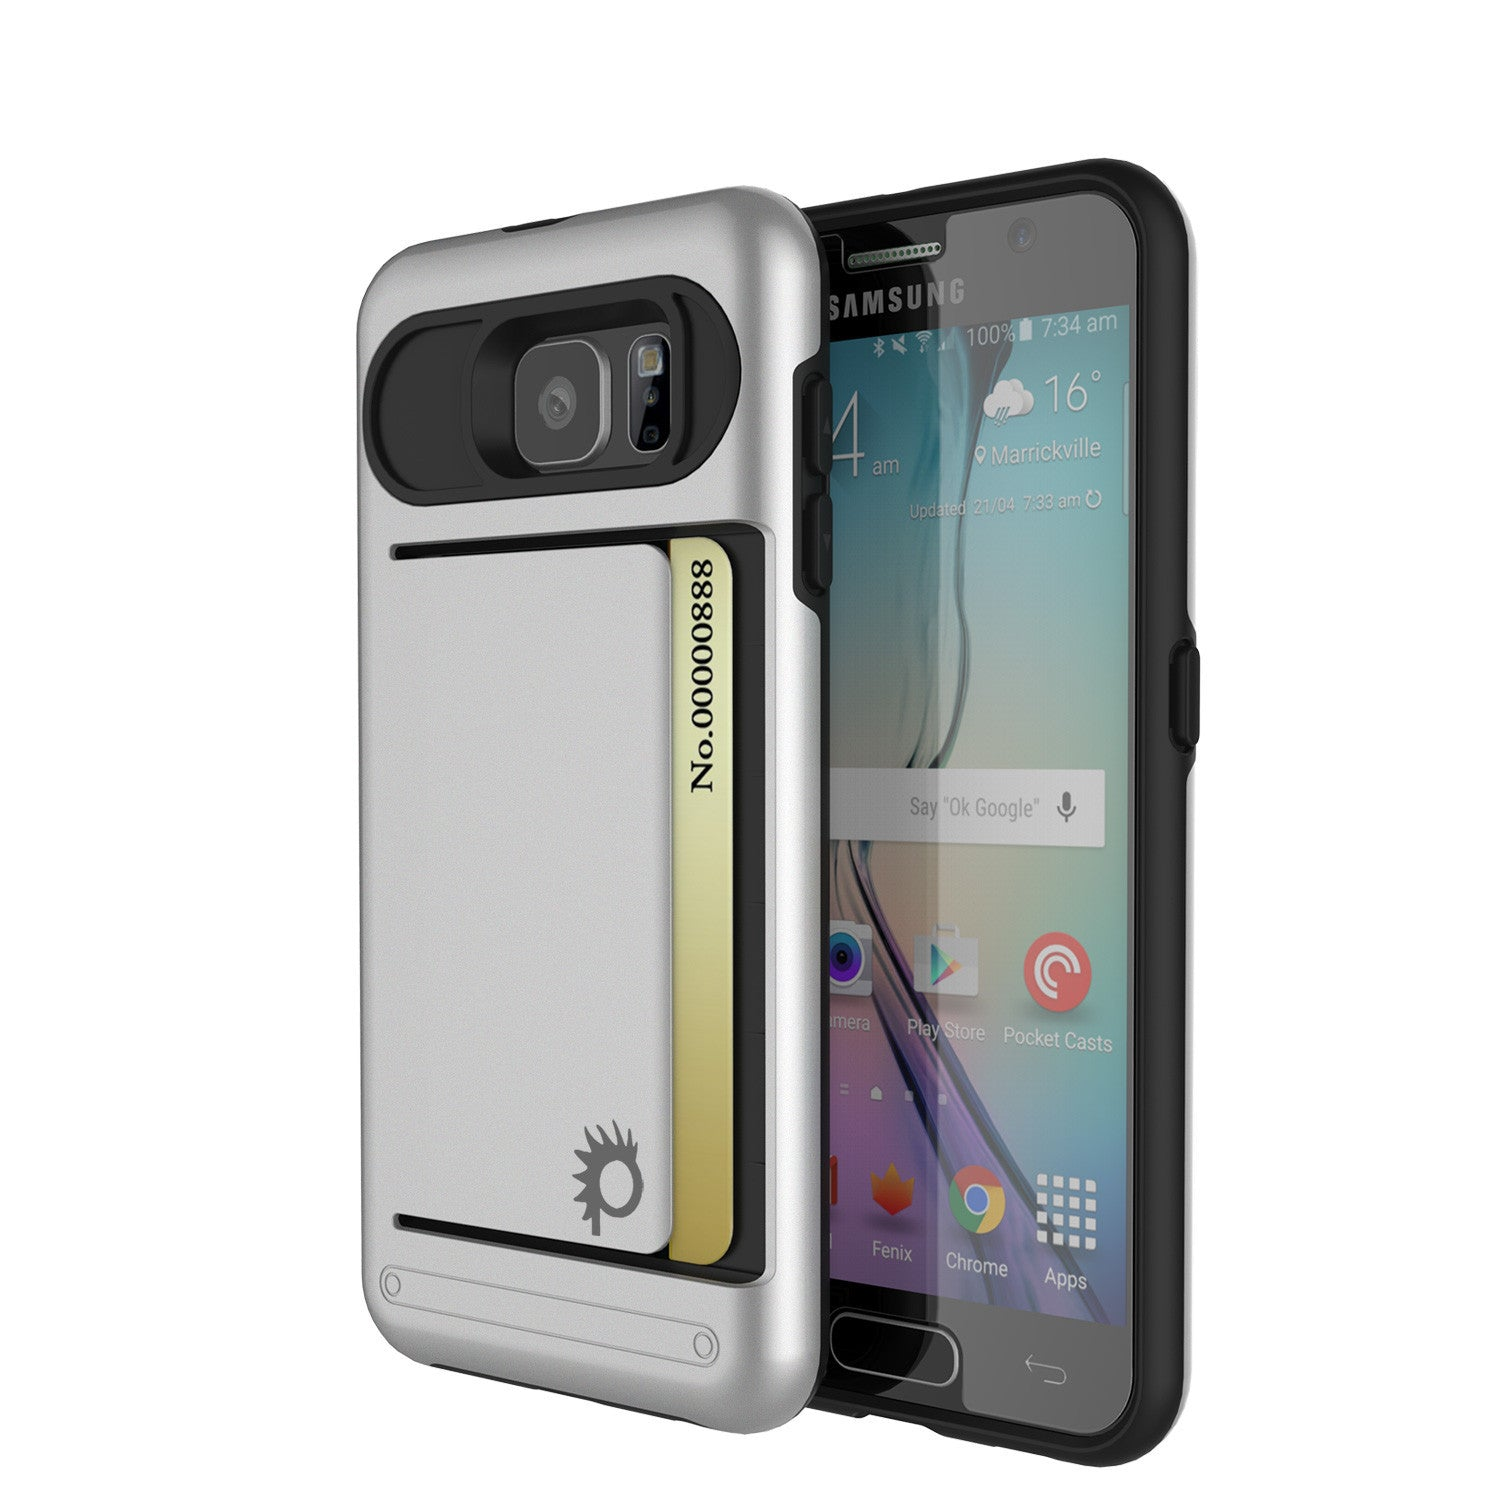 Galaxy S6 EDGE Case PunkCase CLUTCH Silver Series Slim Armor Soft Cover Case w/ Screen Protector